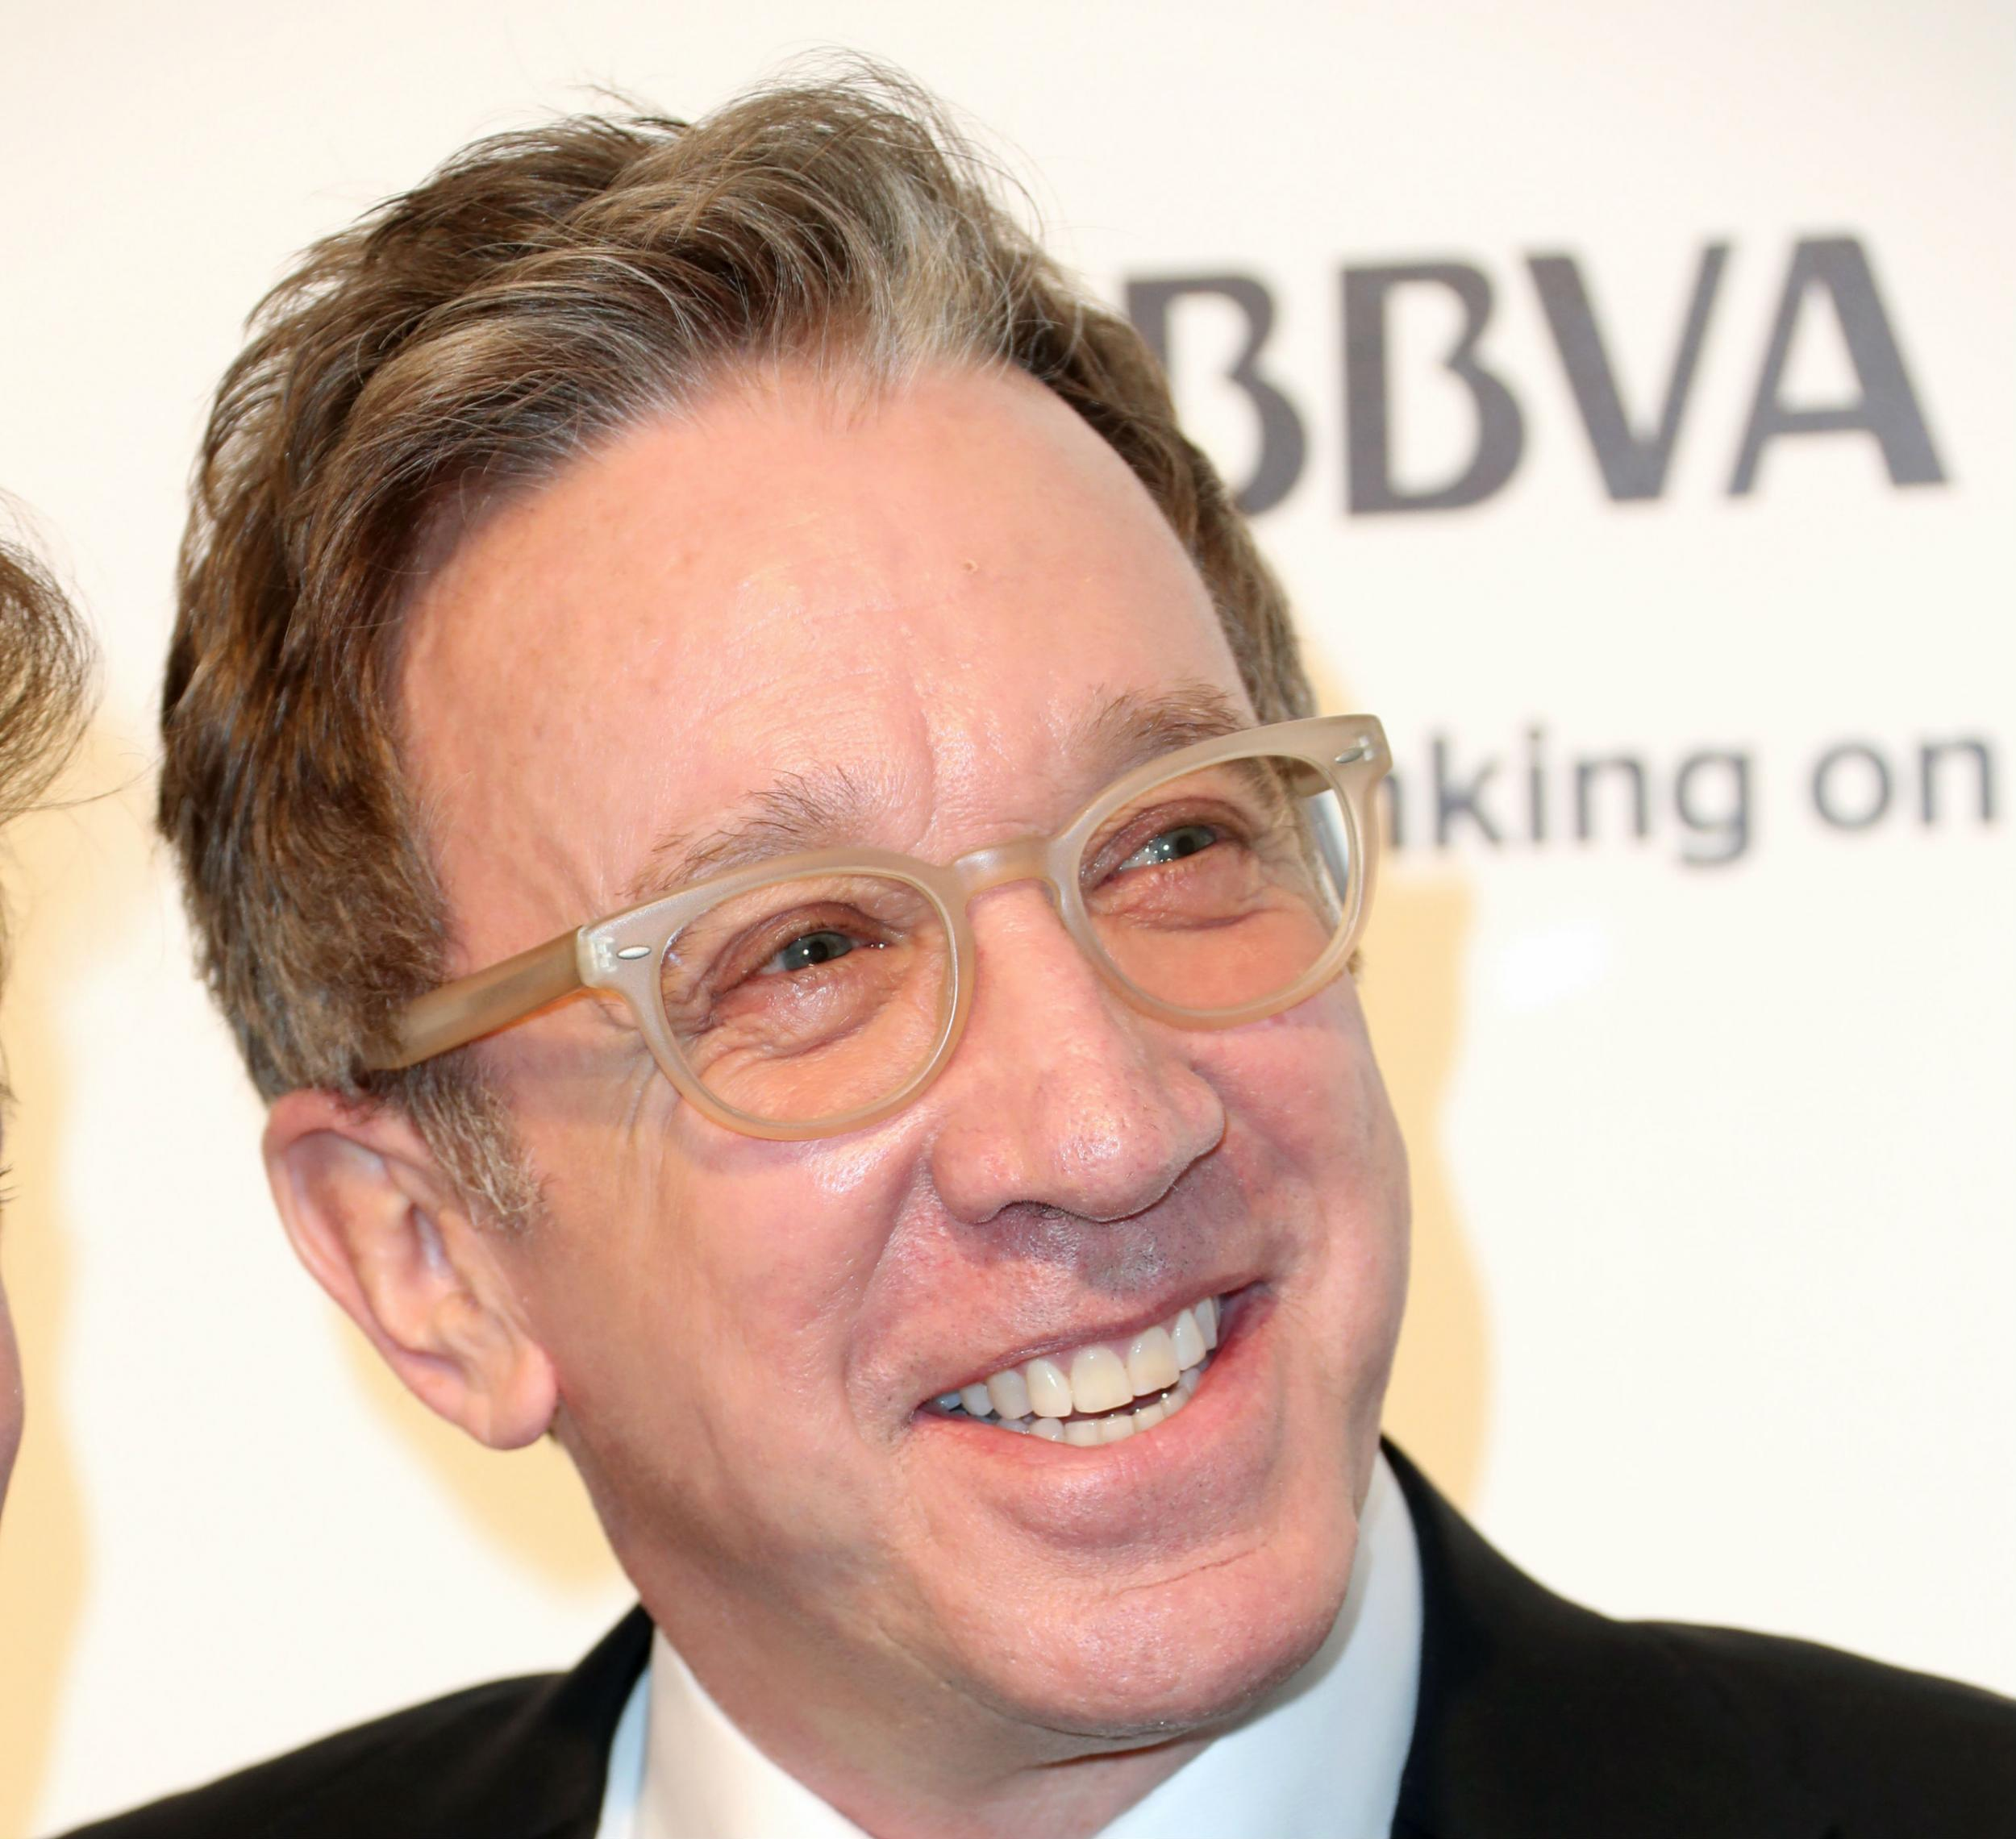 a biography of tim allen an actor and comedian Timothy alan dick (born june 13, 1953) known professionally as tim allen, is an american actor and comedian he is known for his role in the sitcom home improvement.